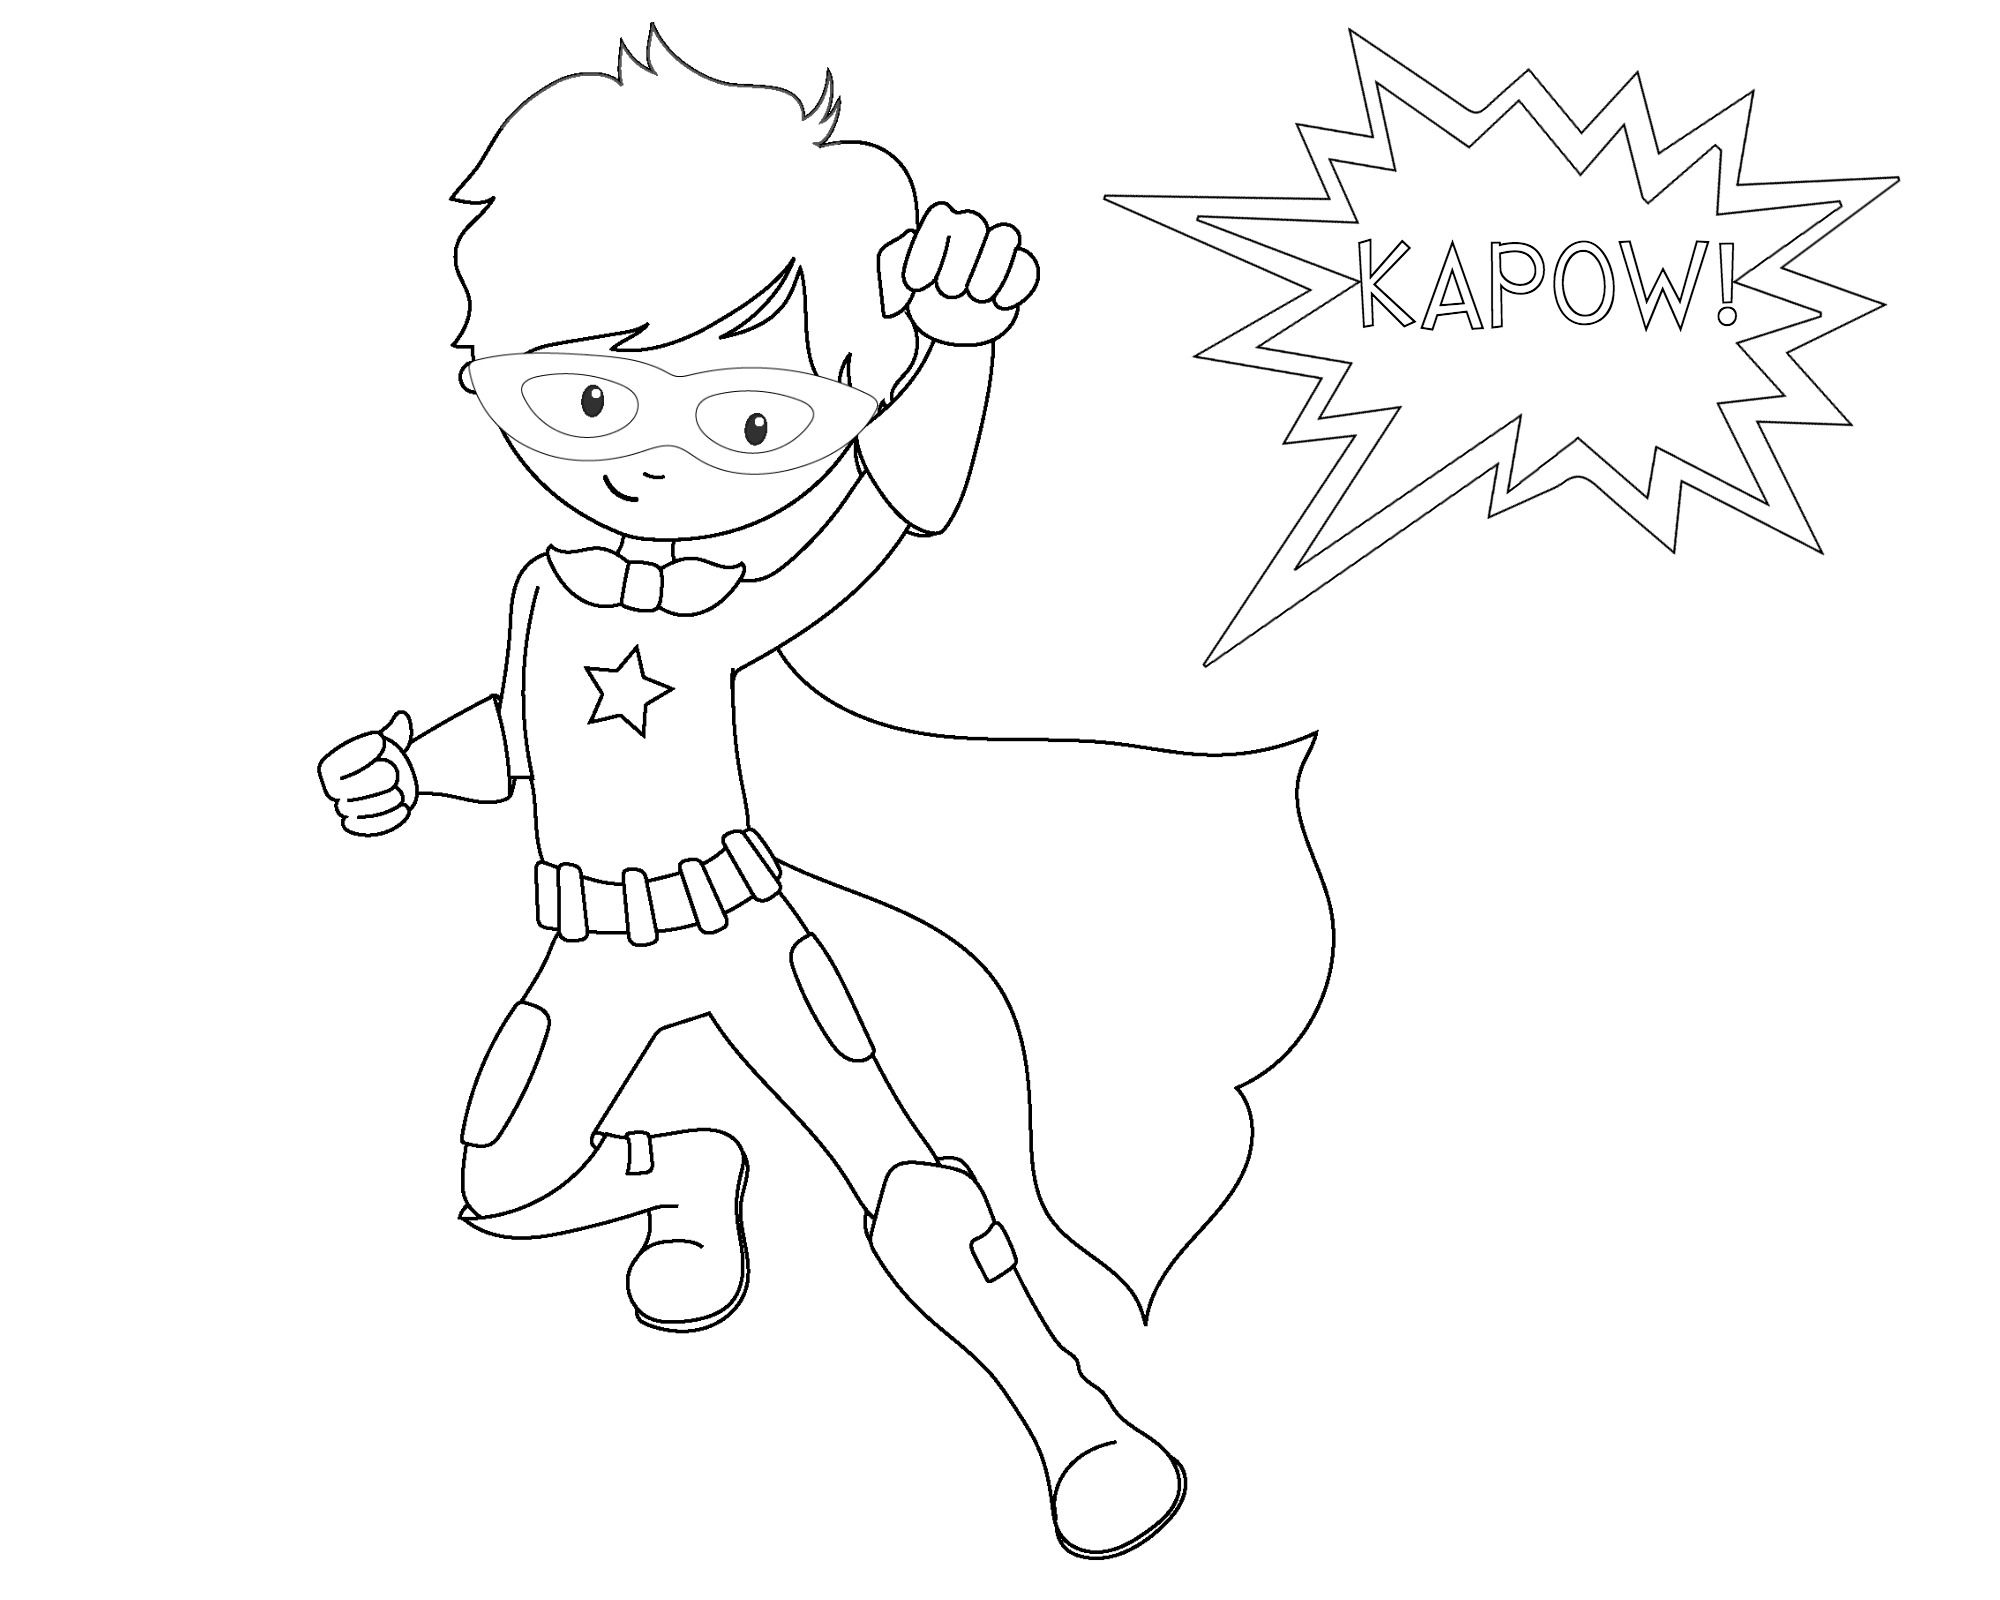 Universal image intended for free printable superhero coloring pages